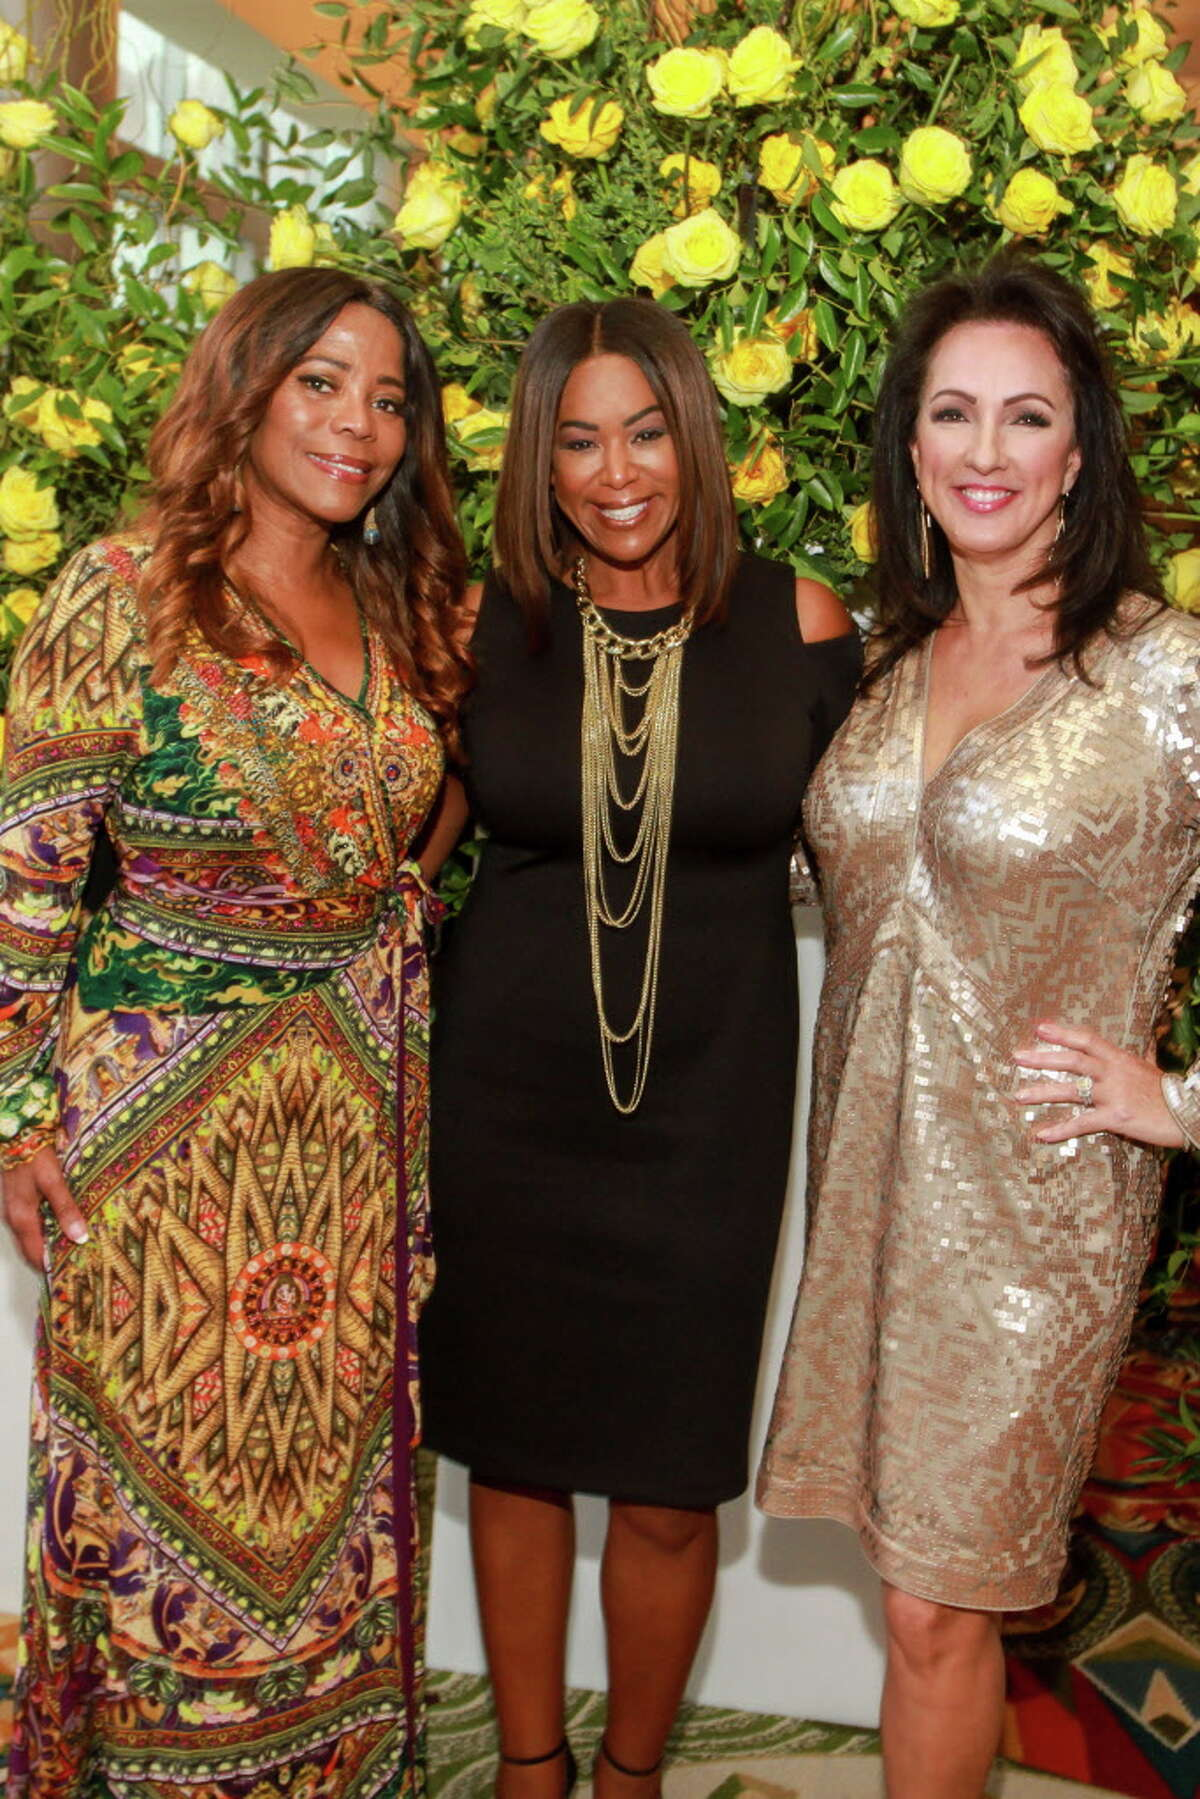 Darian Ward, from left, Deborah Duncan and Alicia Smith at the International Women's Conference gala. (For the Chronicle/Gary Fountain, October 27, 2017)